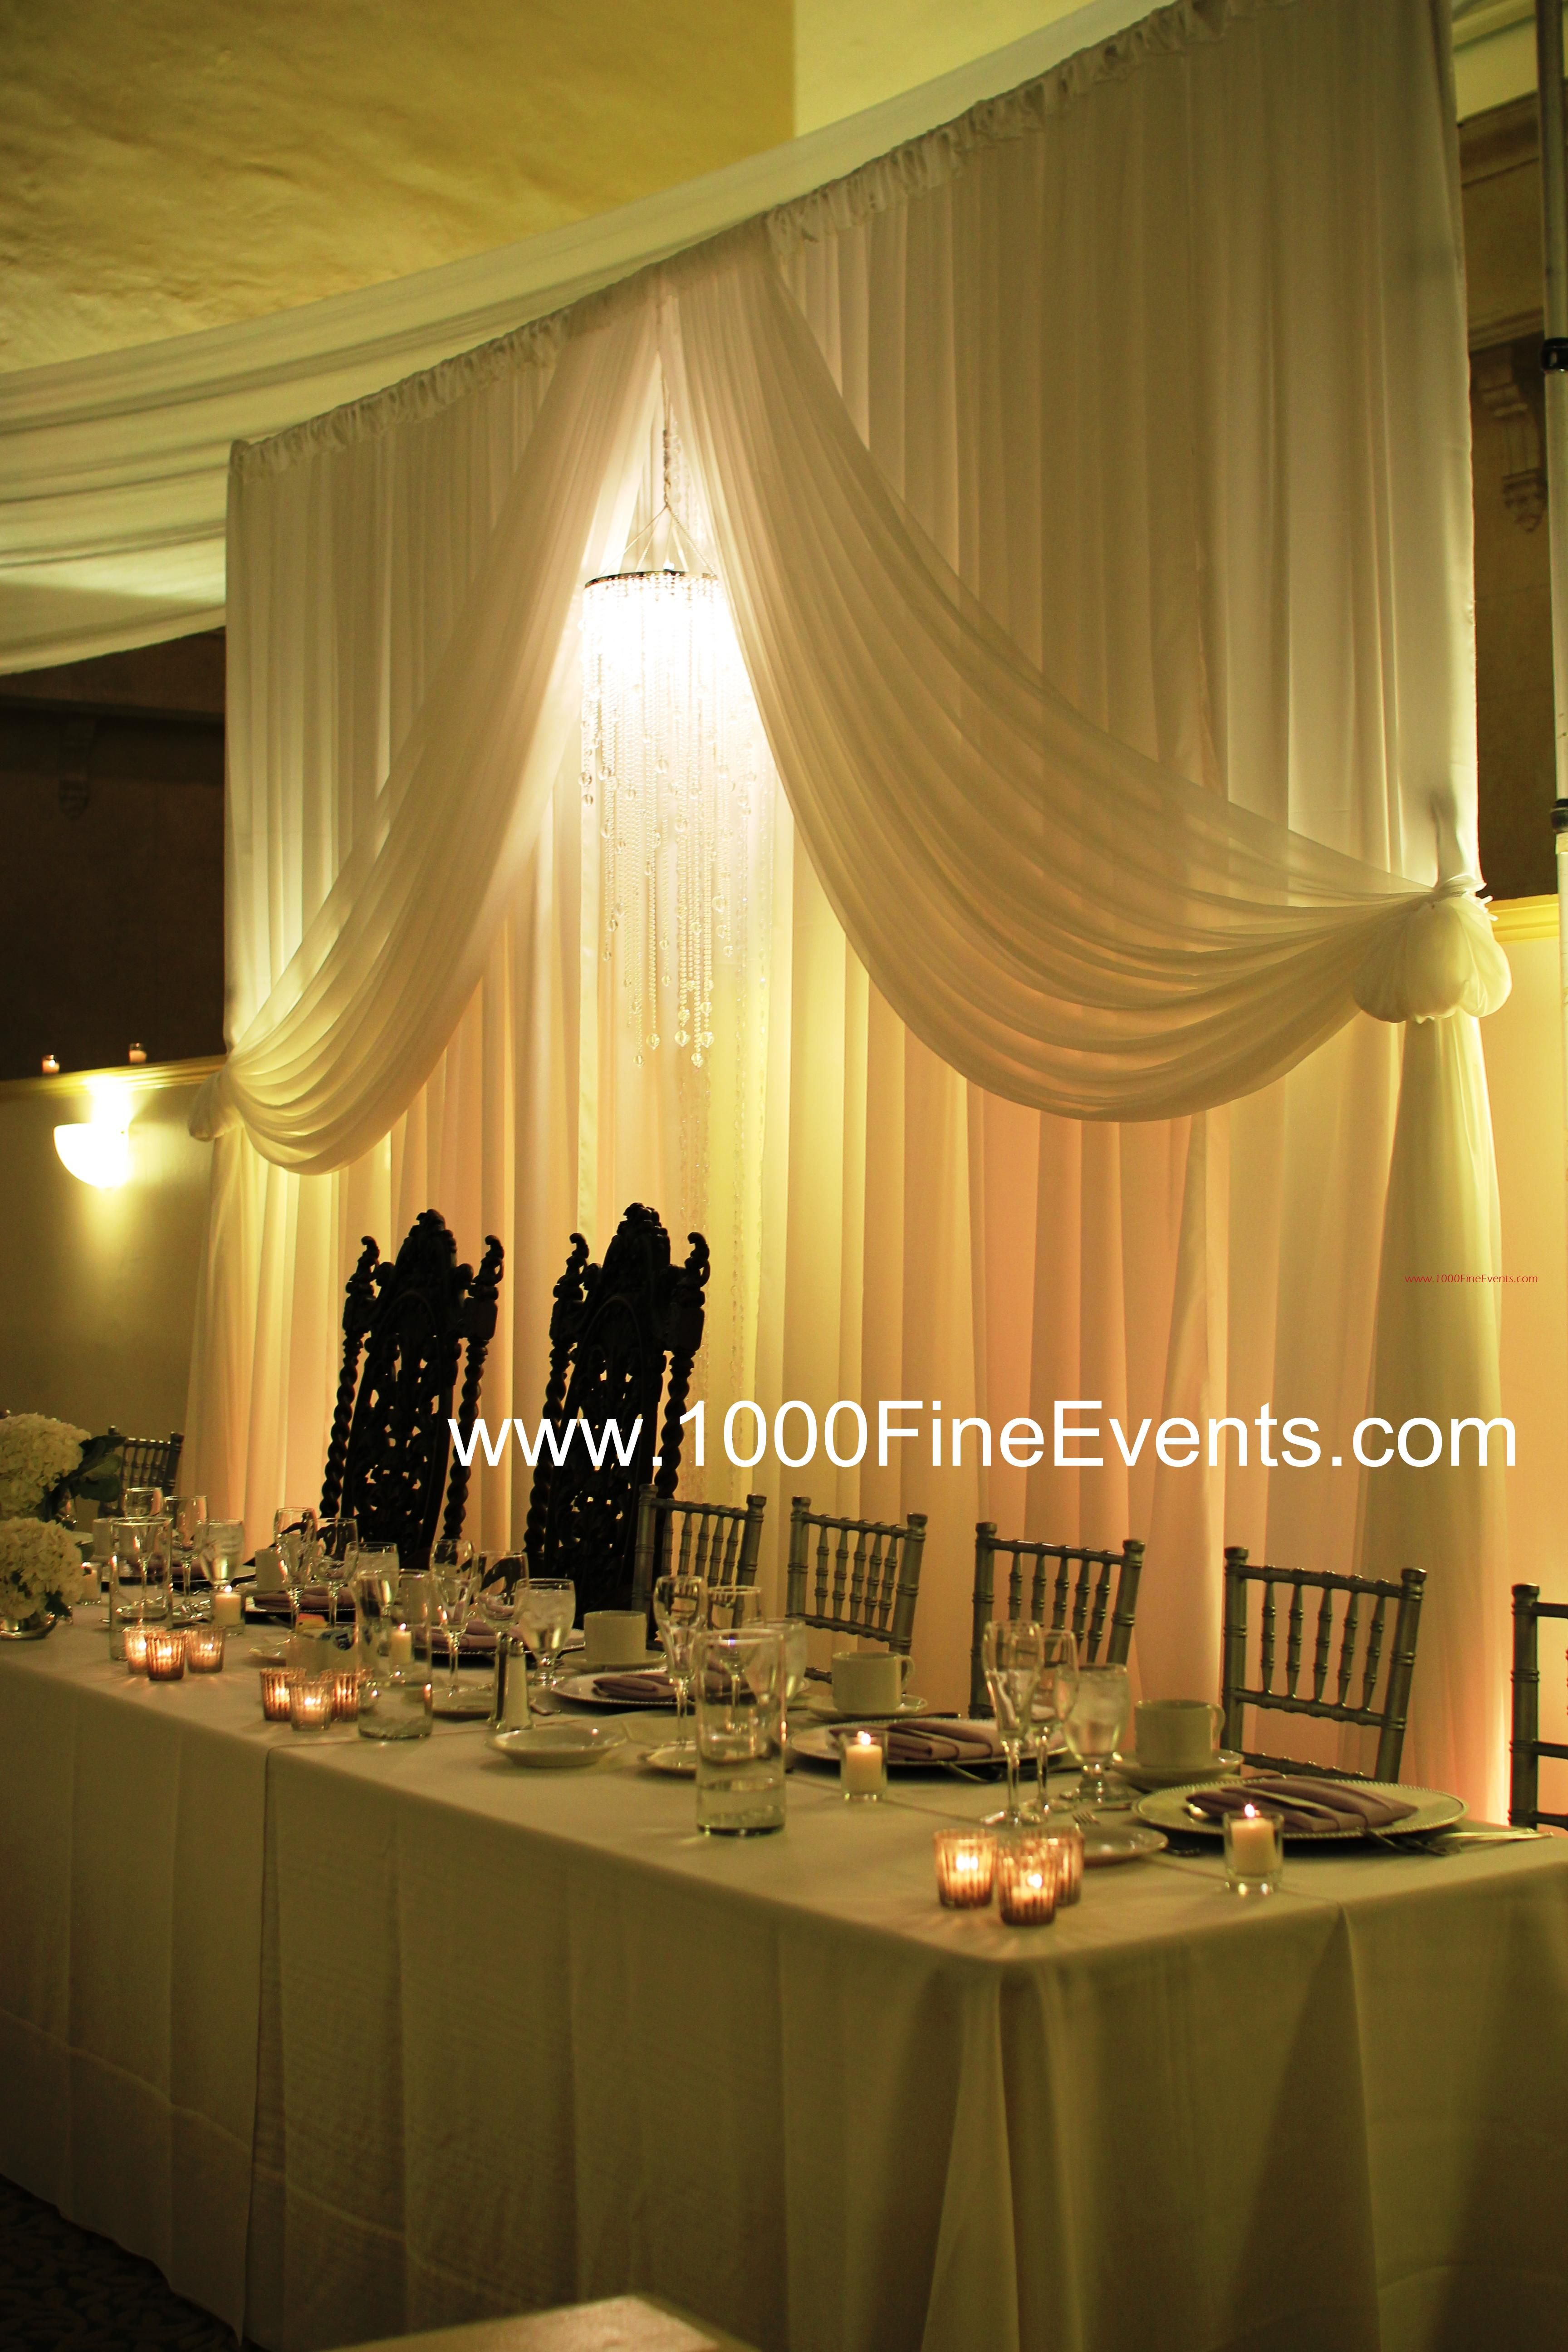 Emejing Head Table Wedding Ideas Pictures - Styles & Ideas 2018 ...